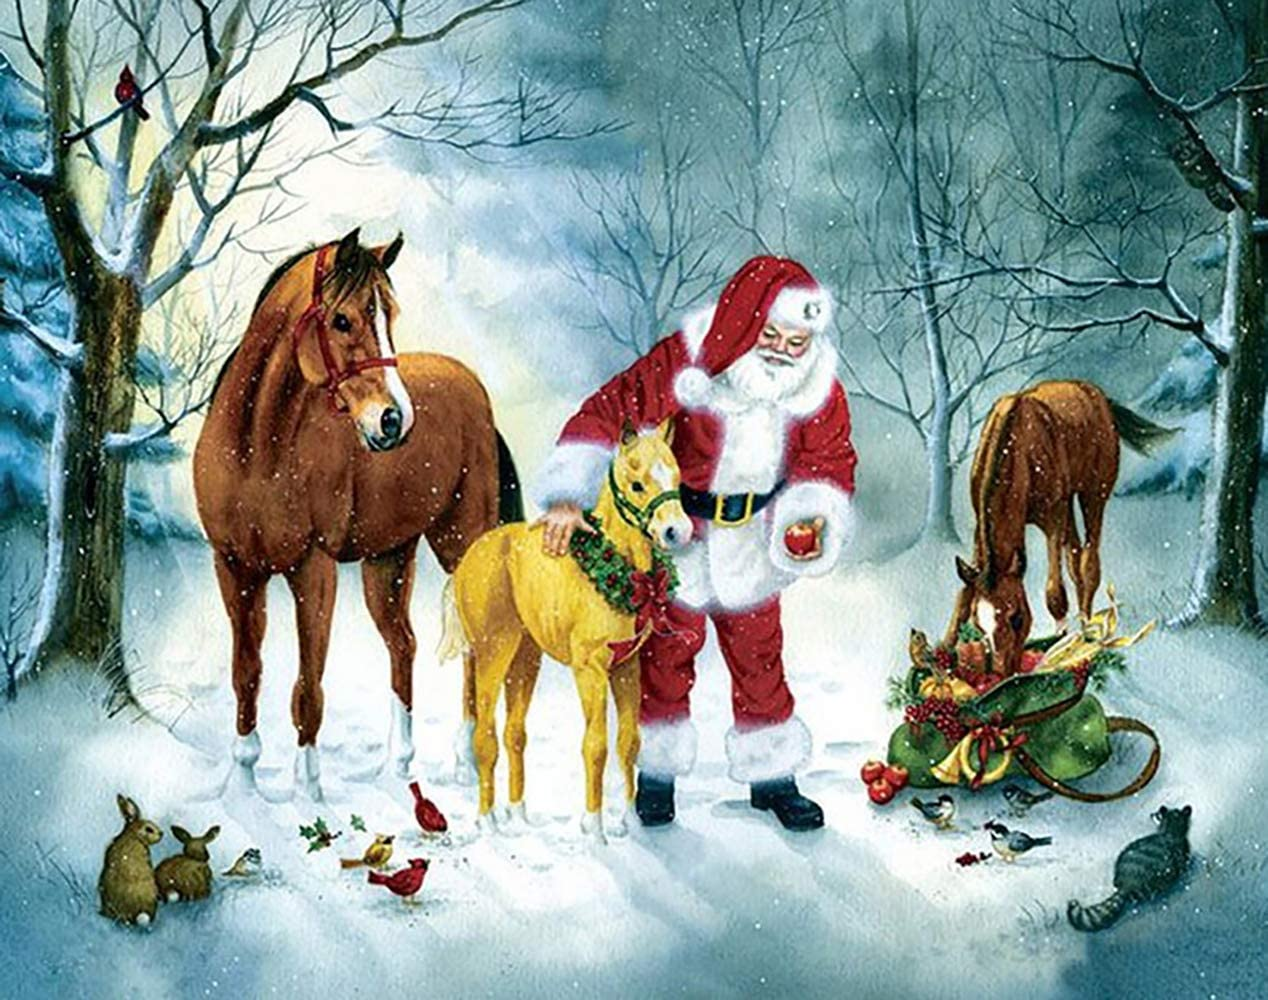 11.8X15.8 Full Drill Christmas Santa Feed Horse Squirrel Crystal Rhinestone Embroidery Pictures Arts Craft for Home Wall Decor Gift Holly LifePro DIY 5D Diamond Painting Kits for Adults